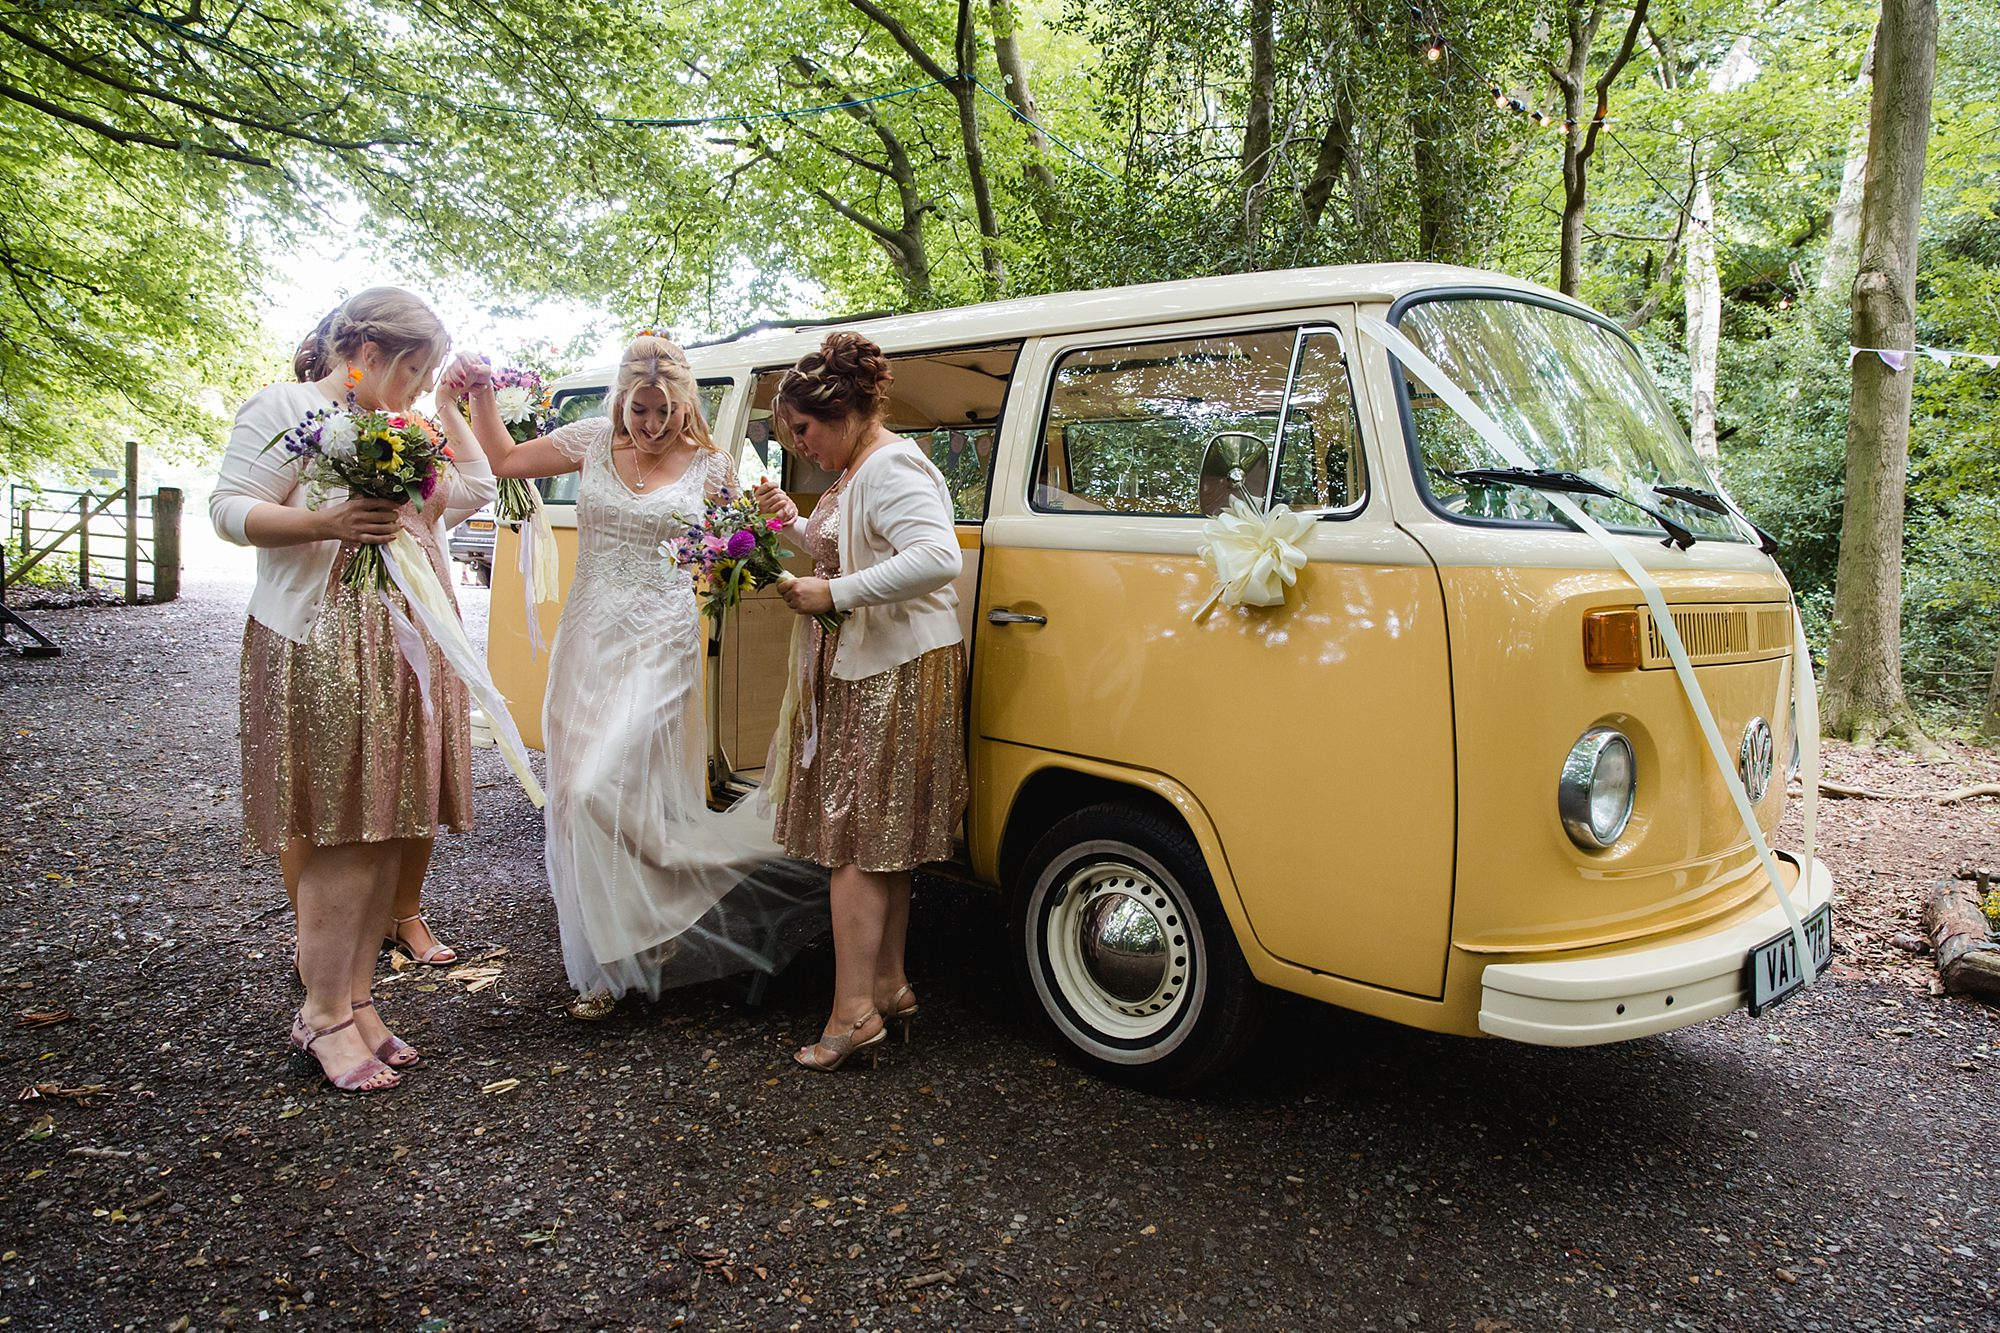 Woodland Weddings Tring bride exits camper van